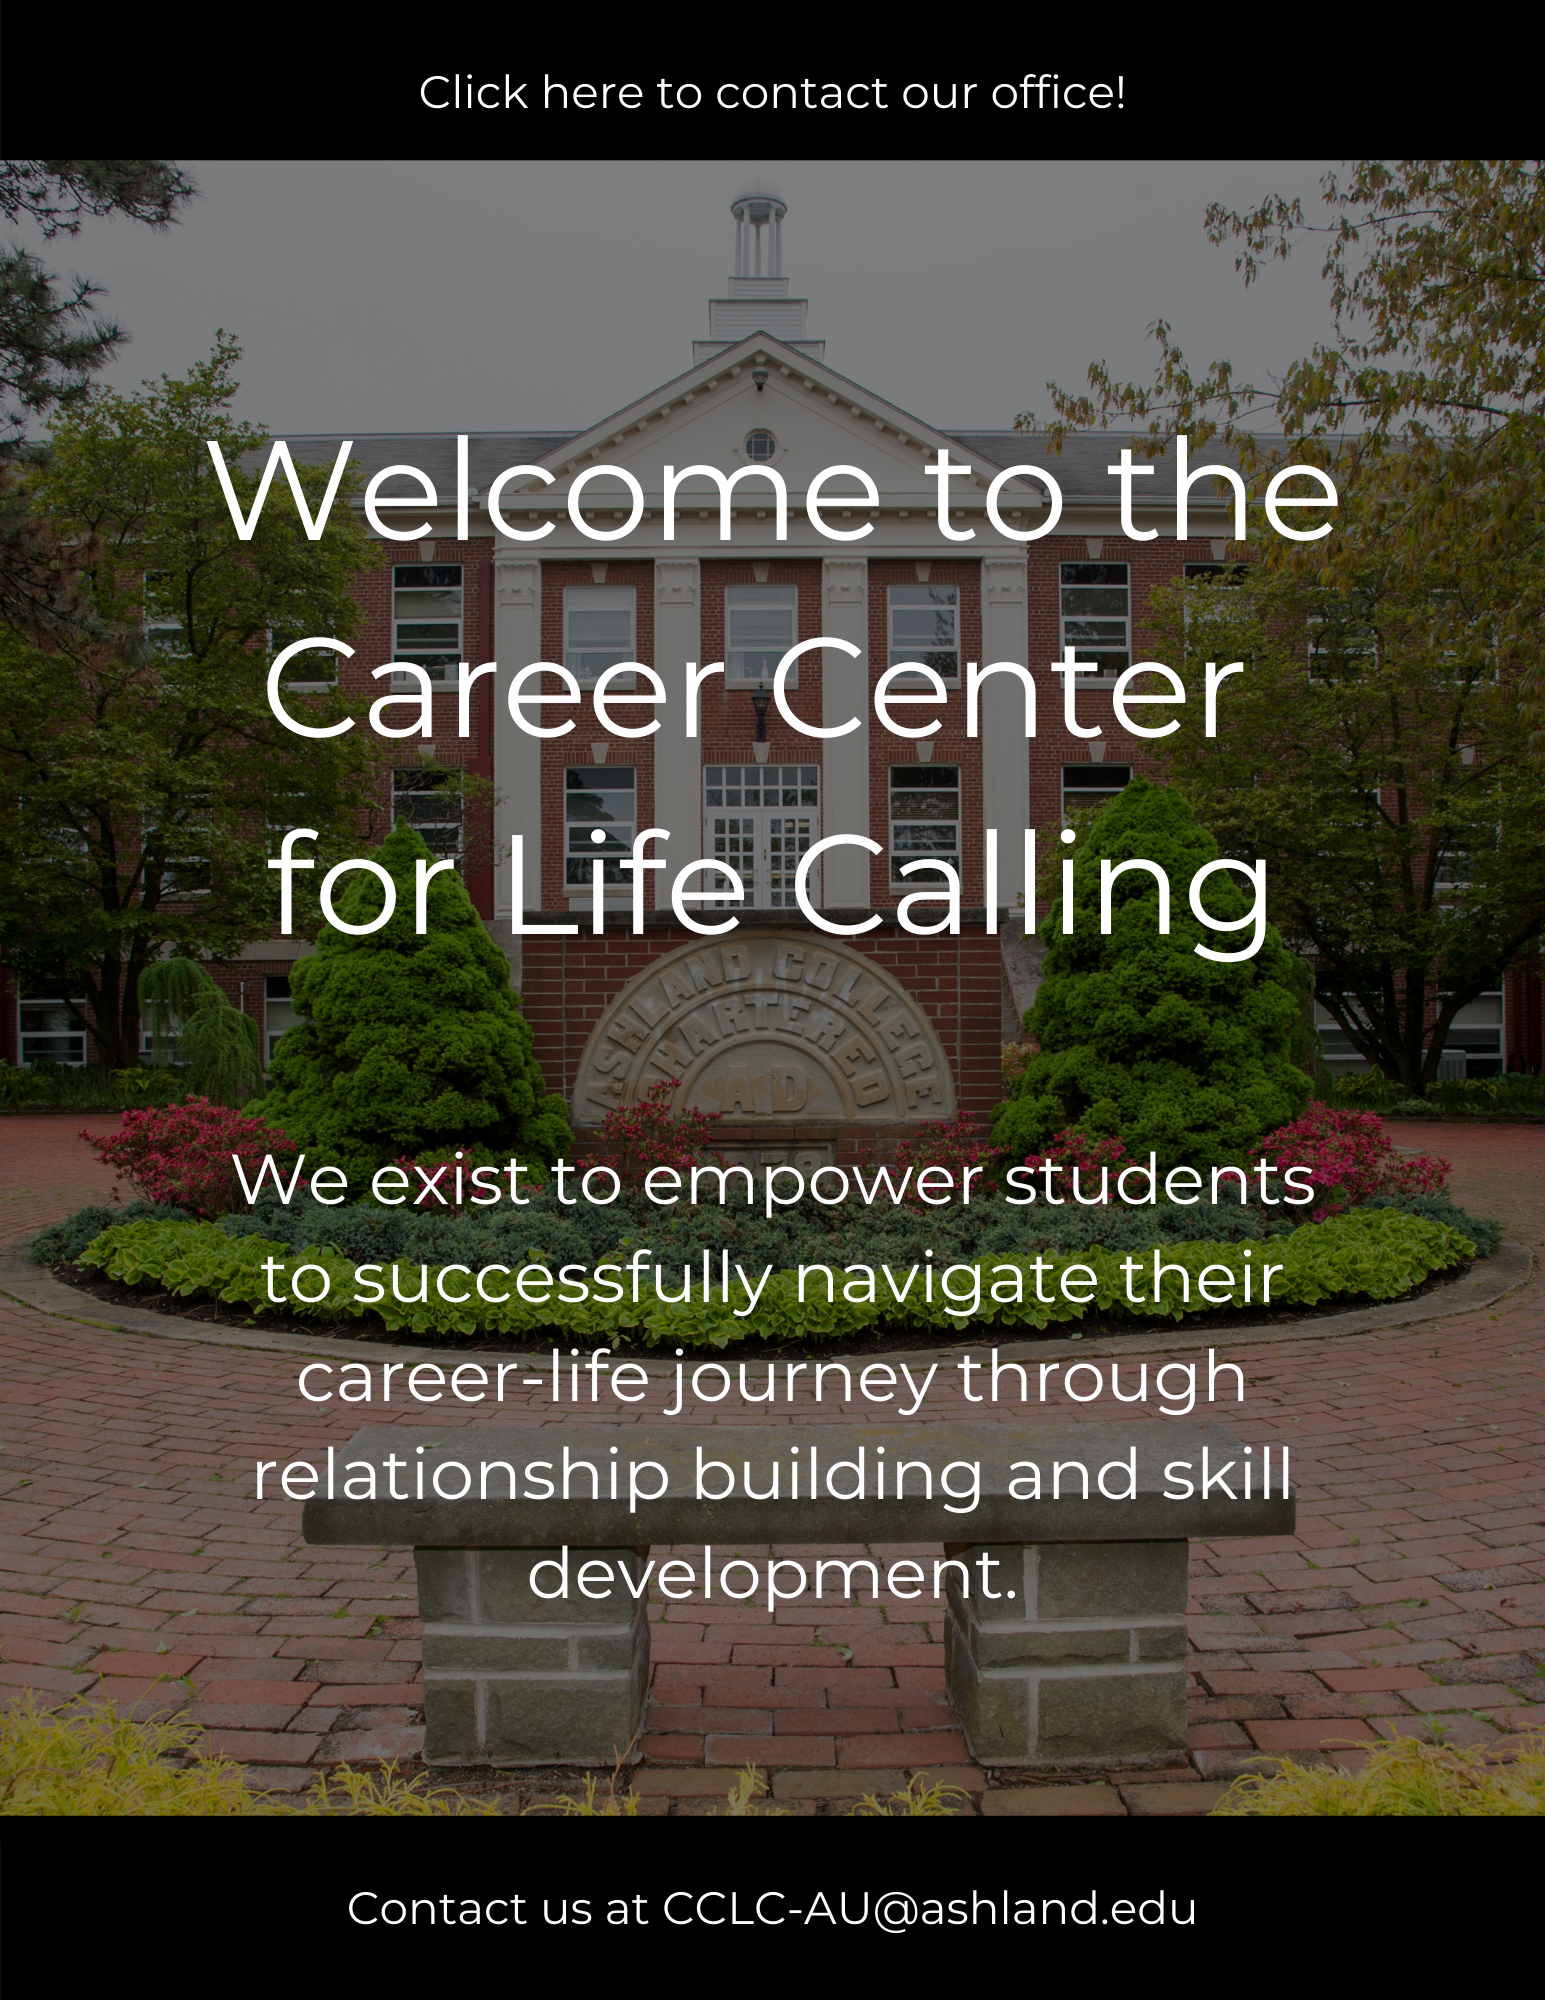 welcome_to_the_career_center_for_life_calling.png